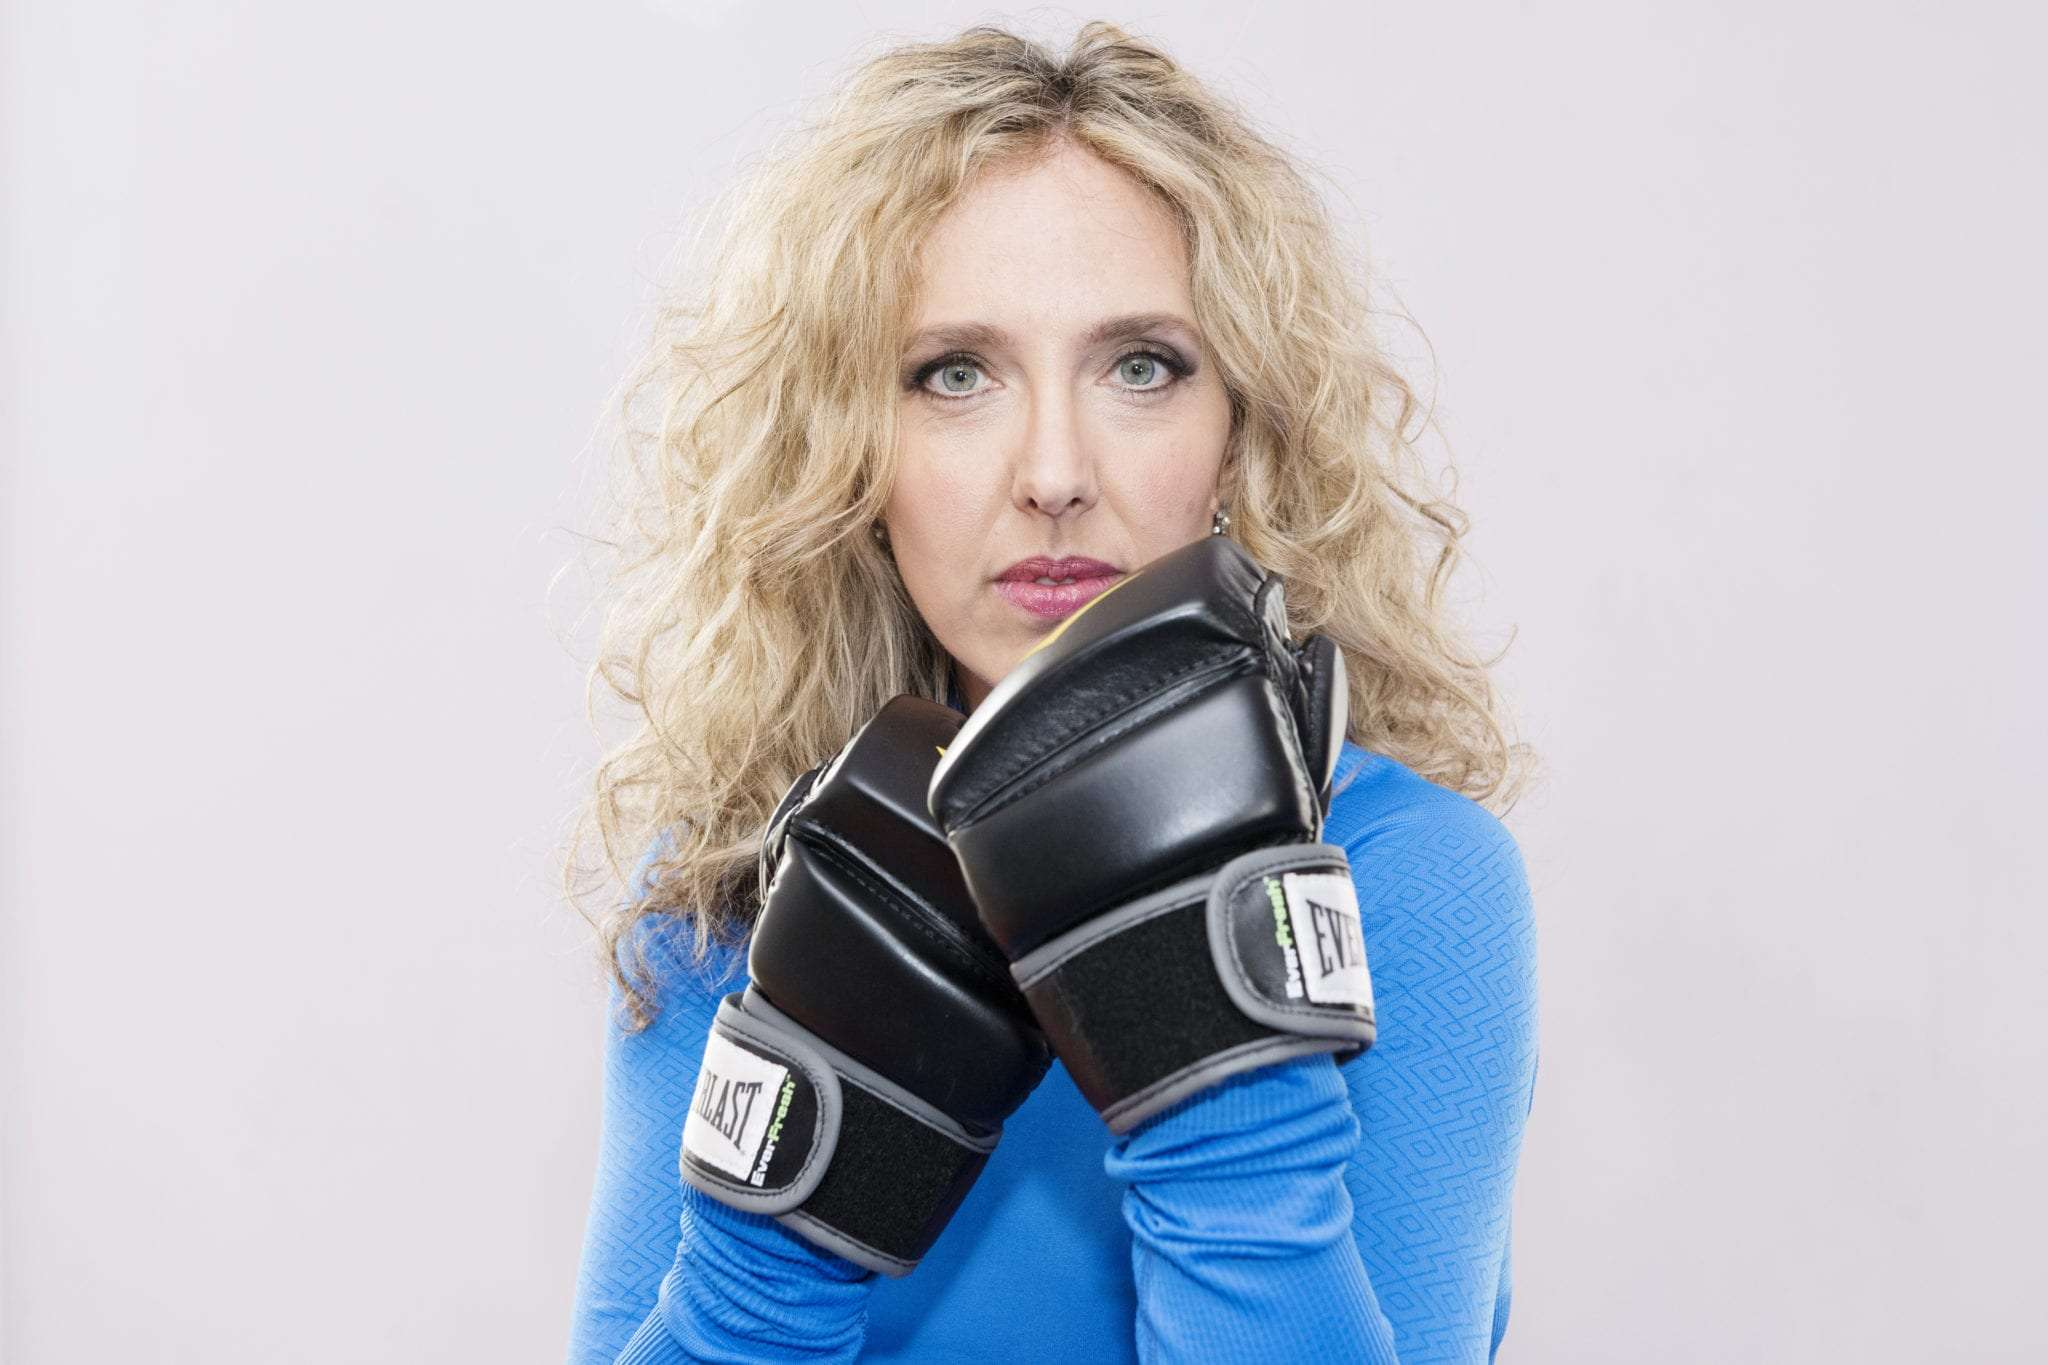 photography, brand strategy, visual story teller, working with a fitness instructor holding boxing gloves